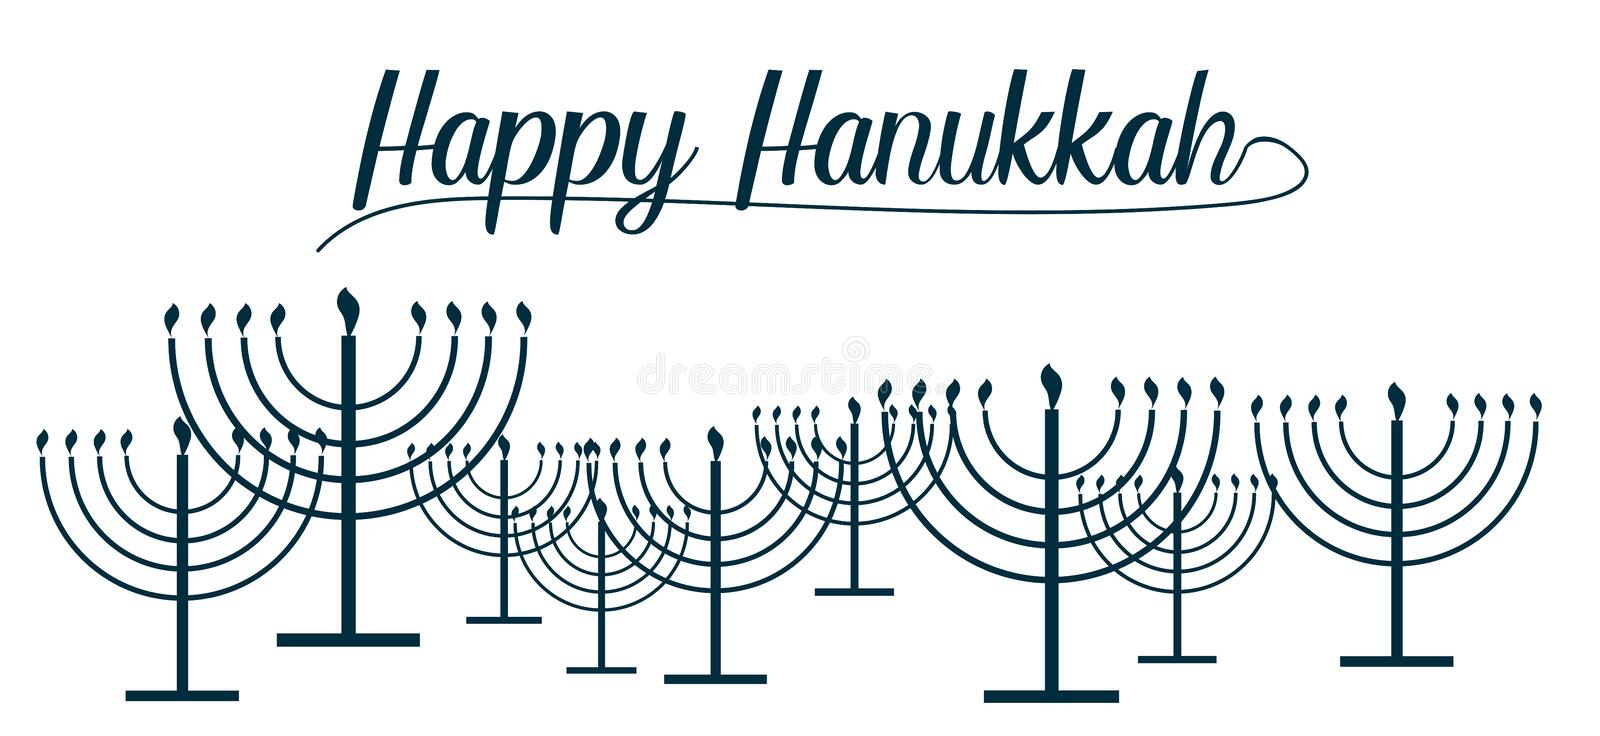 Happy Hanukkah text and repeat pattern of simple outline Hanukkah menorah with burning candles in blue color with empty background royalty free illustration